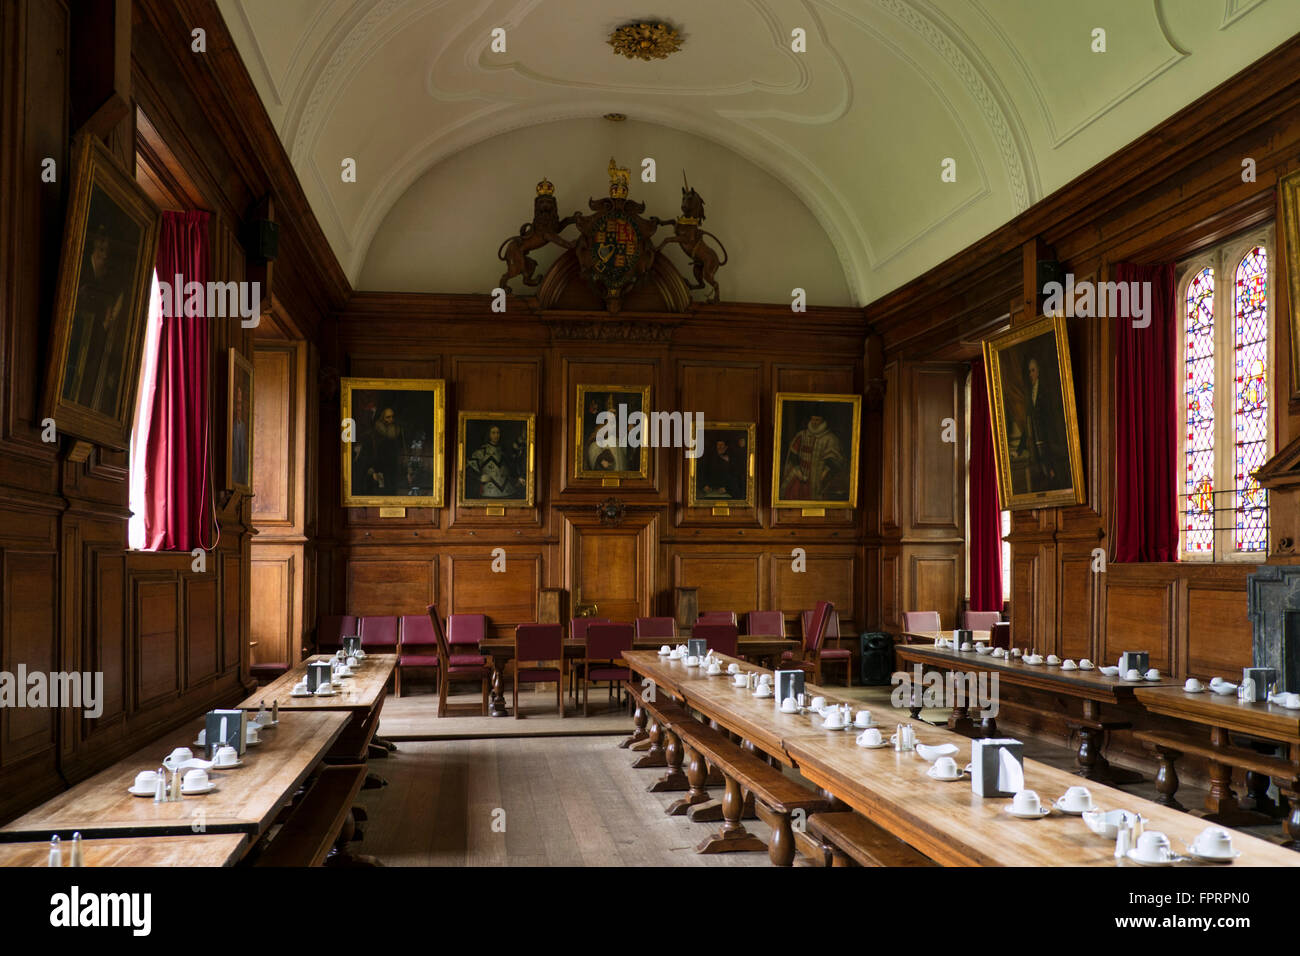 Dining hall at Brasenose college, Oxford - Stock Image